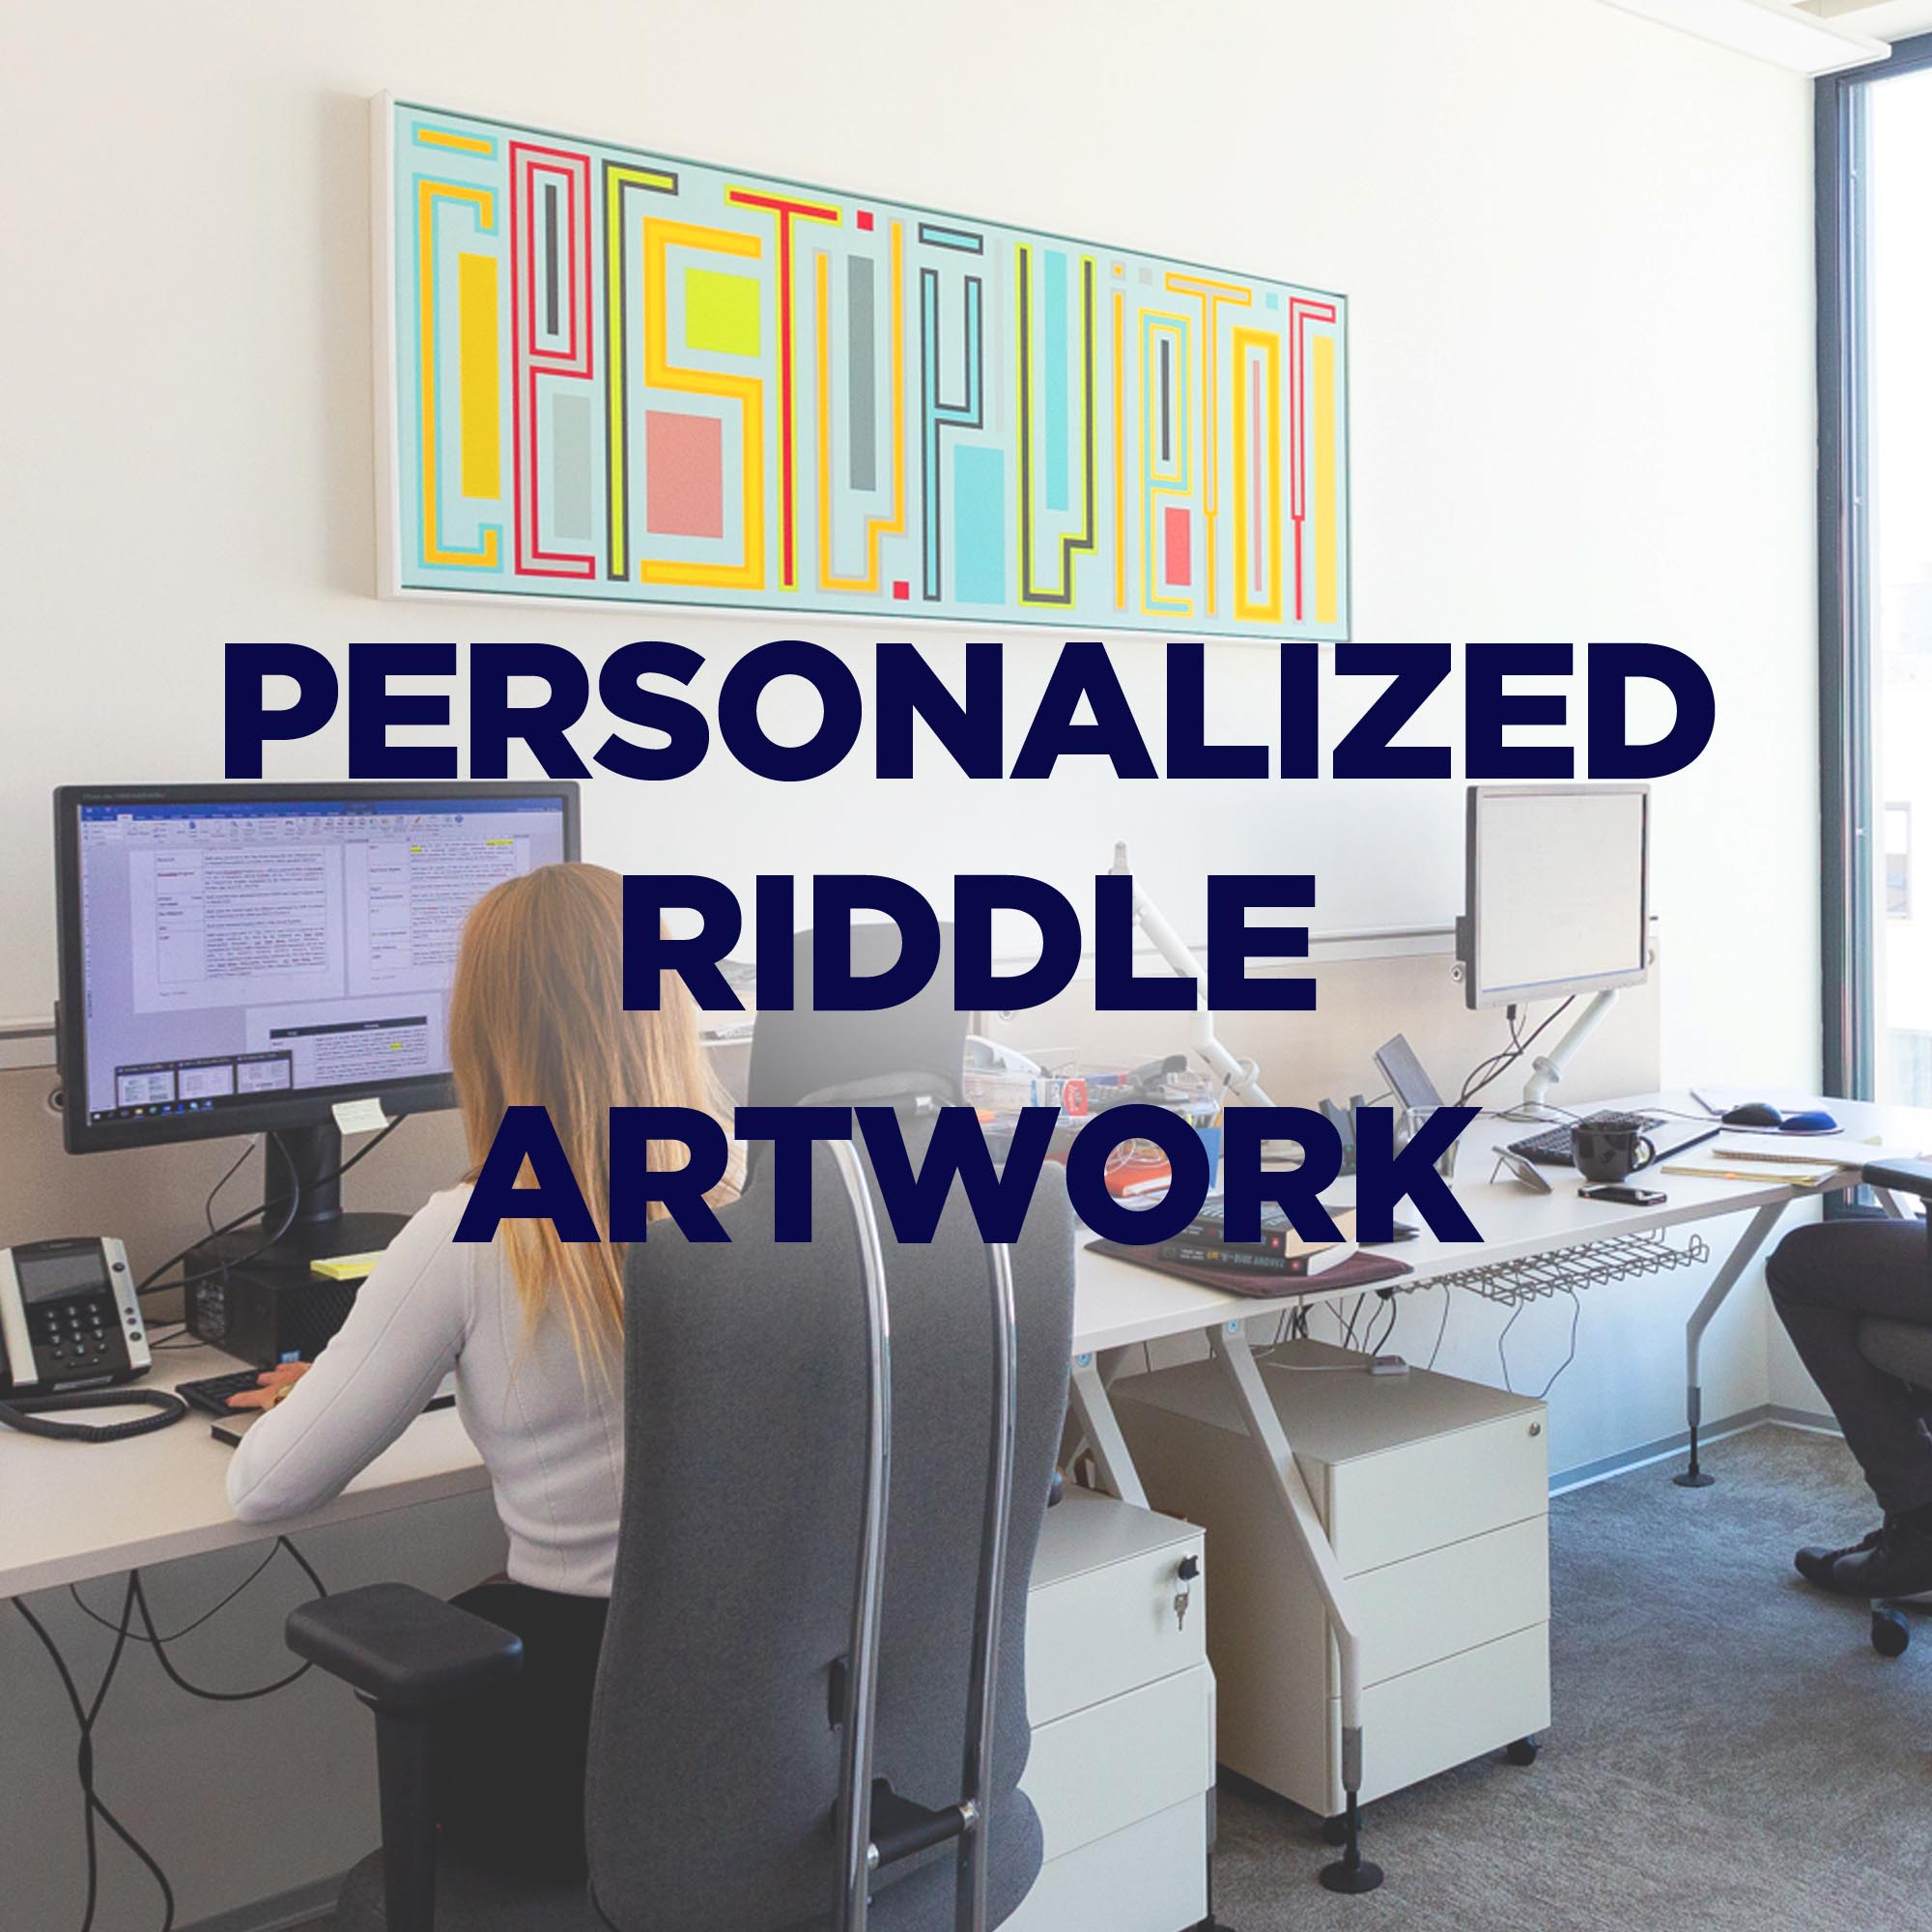 Personalized Riddle Artwork